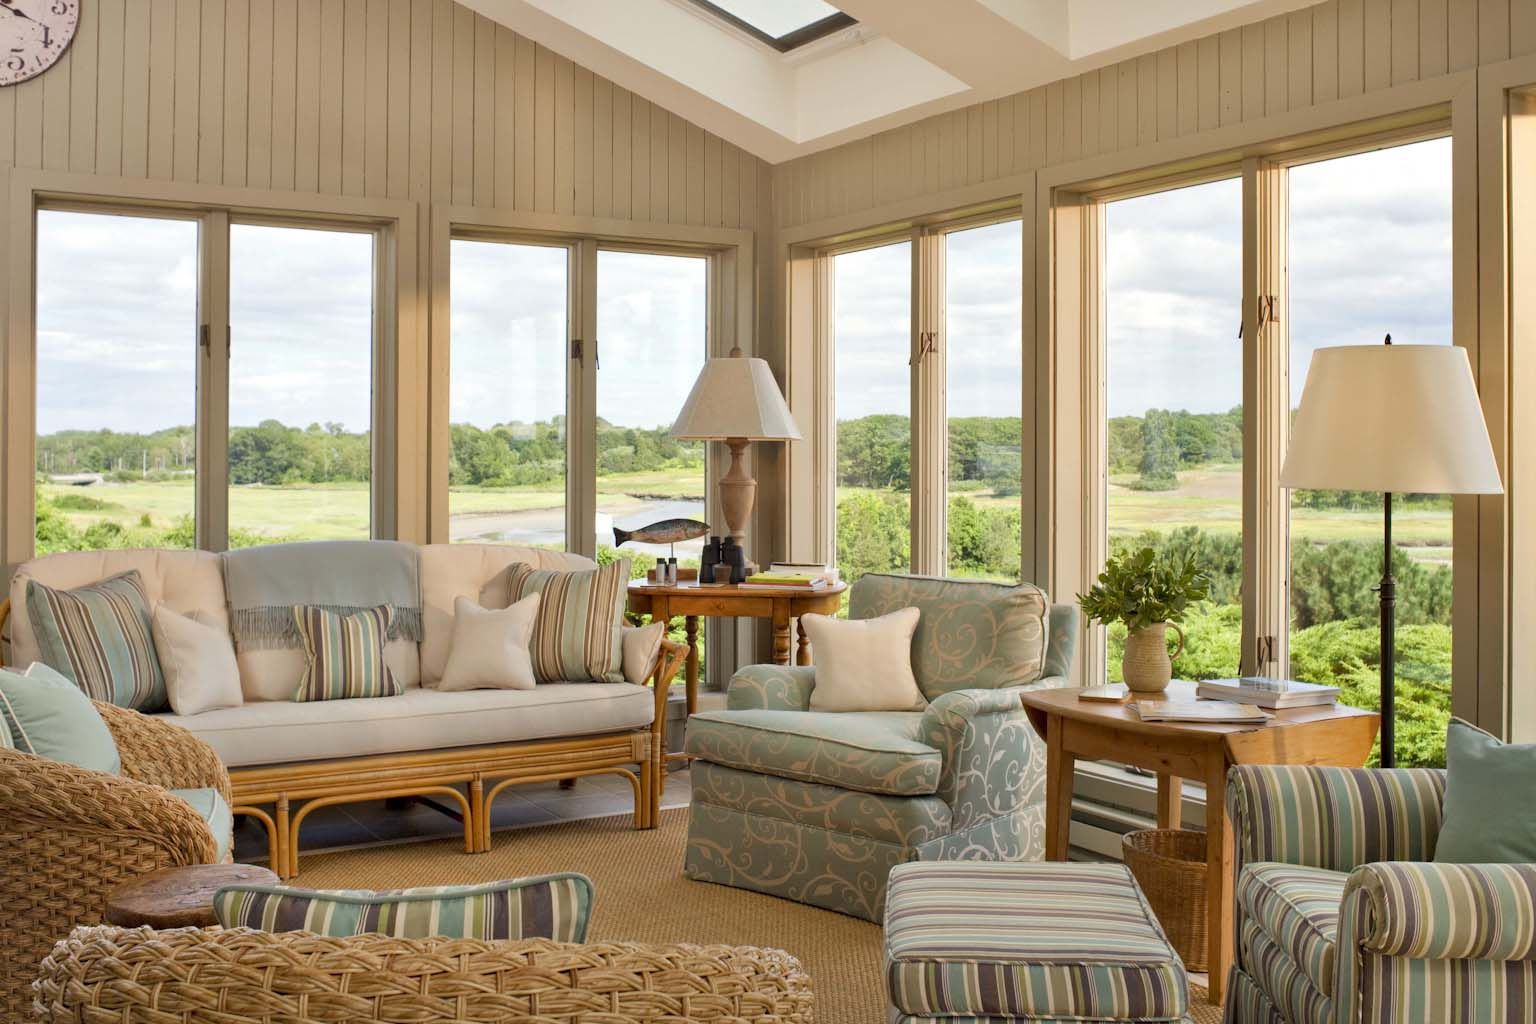 Furniture ideas for sunrooms to inspire you on how to decorate your sunroom  1